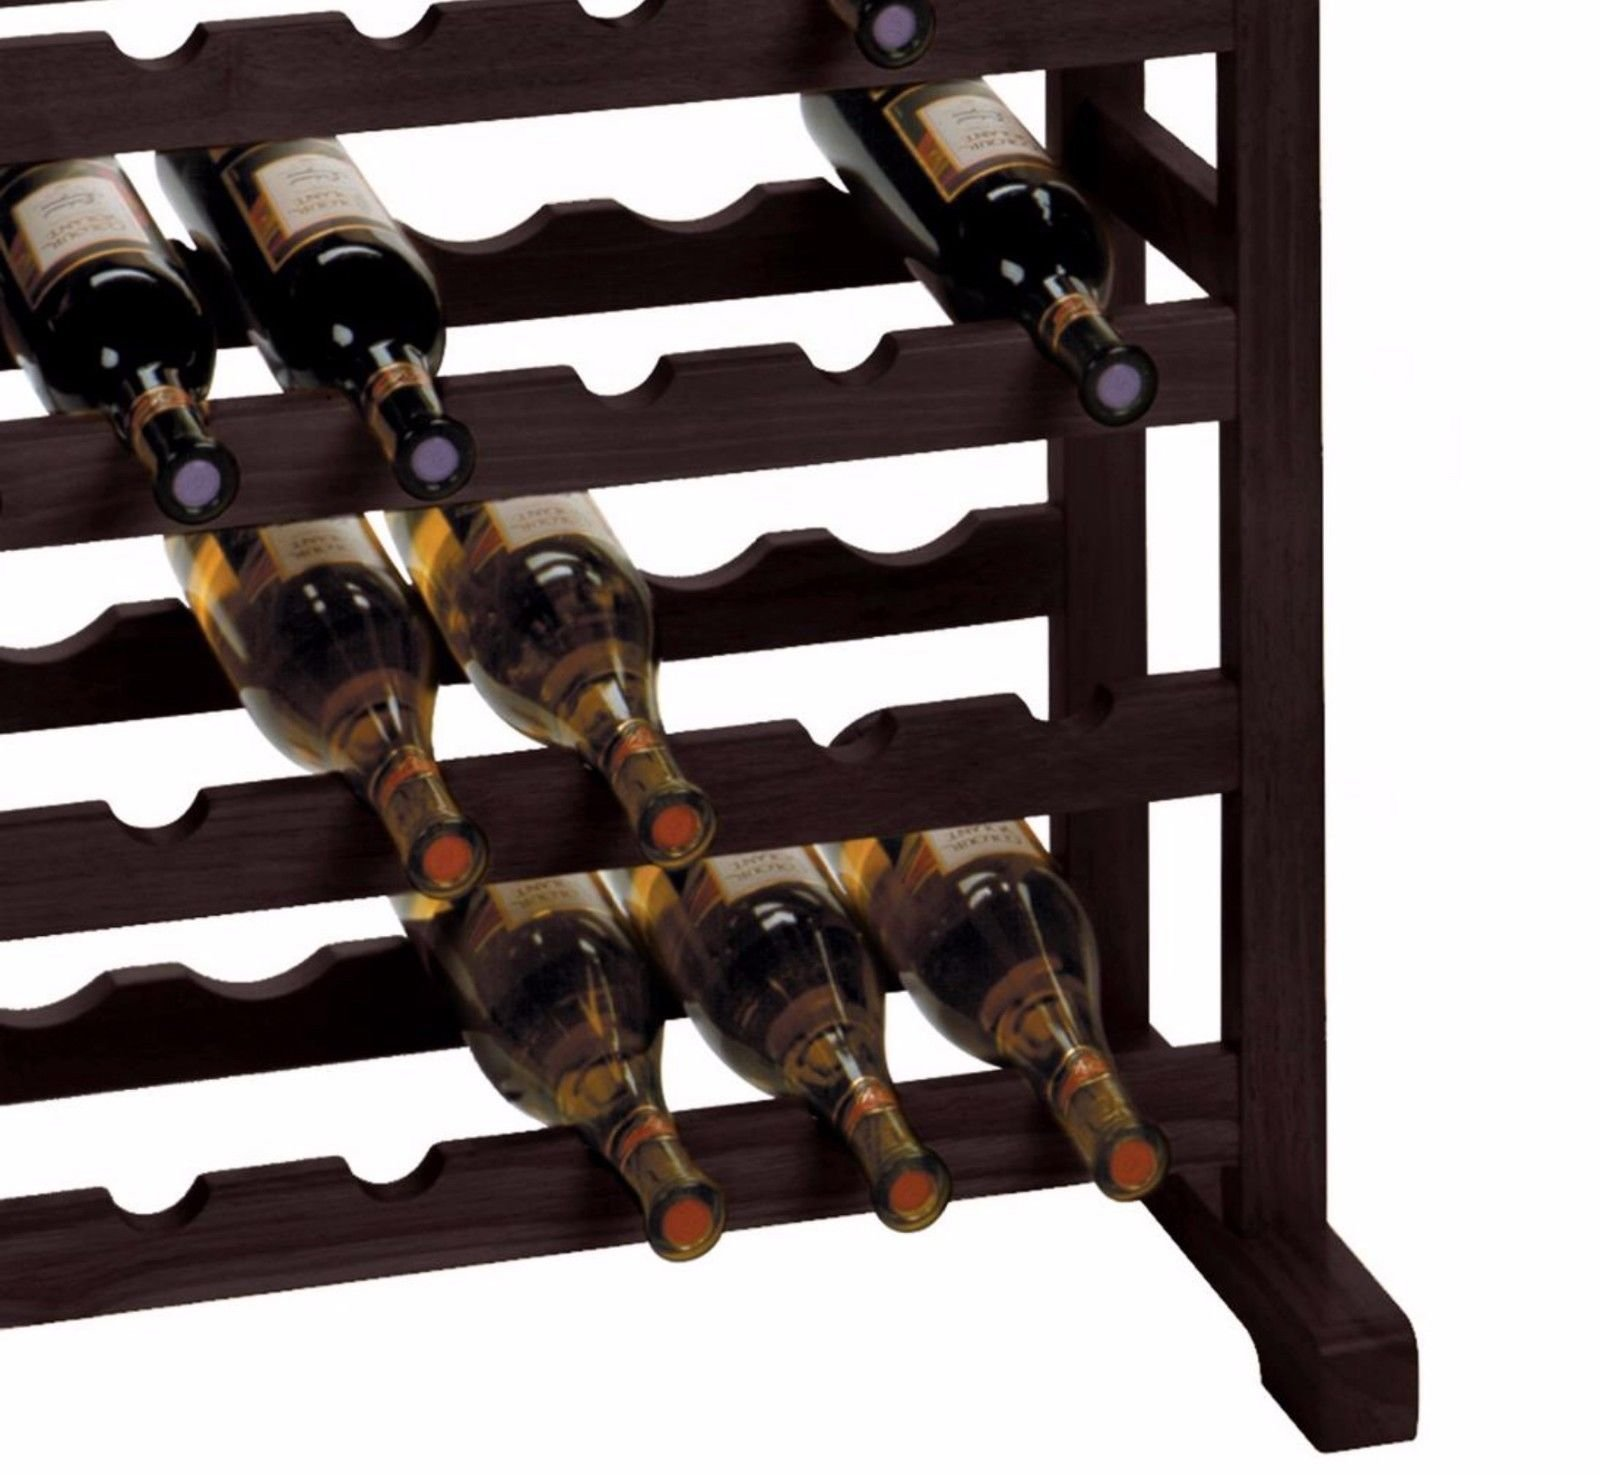 Wood Wine Rack 24 Bottle Glass Hanger Espresso Holder Storage Shelf Display by RX-789 (Image #5)